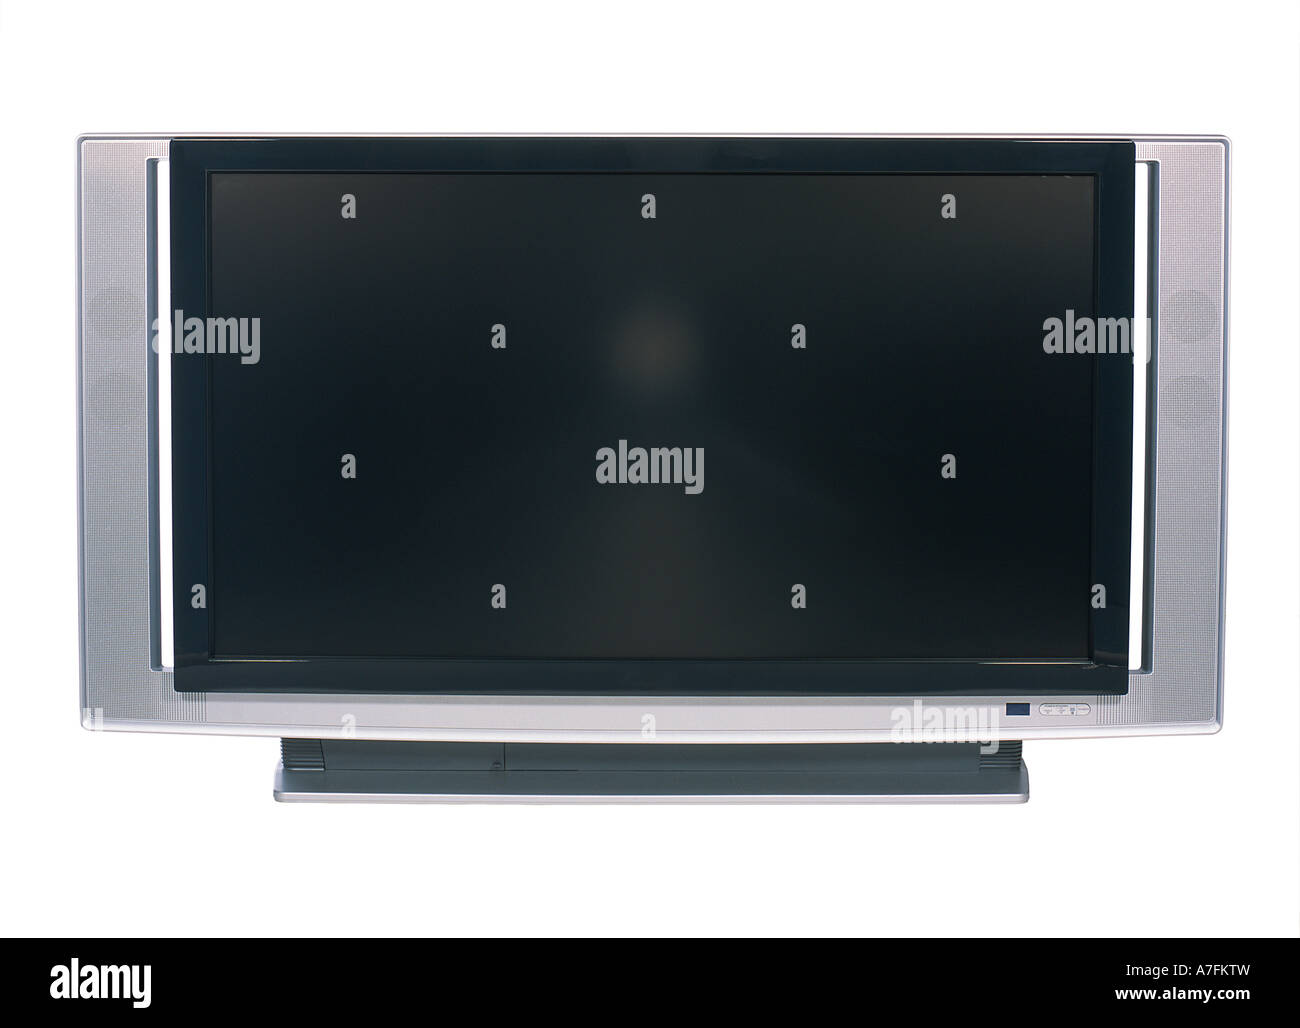 Flat screen television - Stock Image